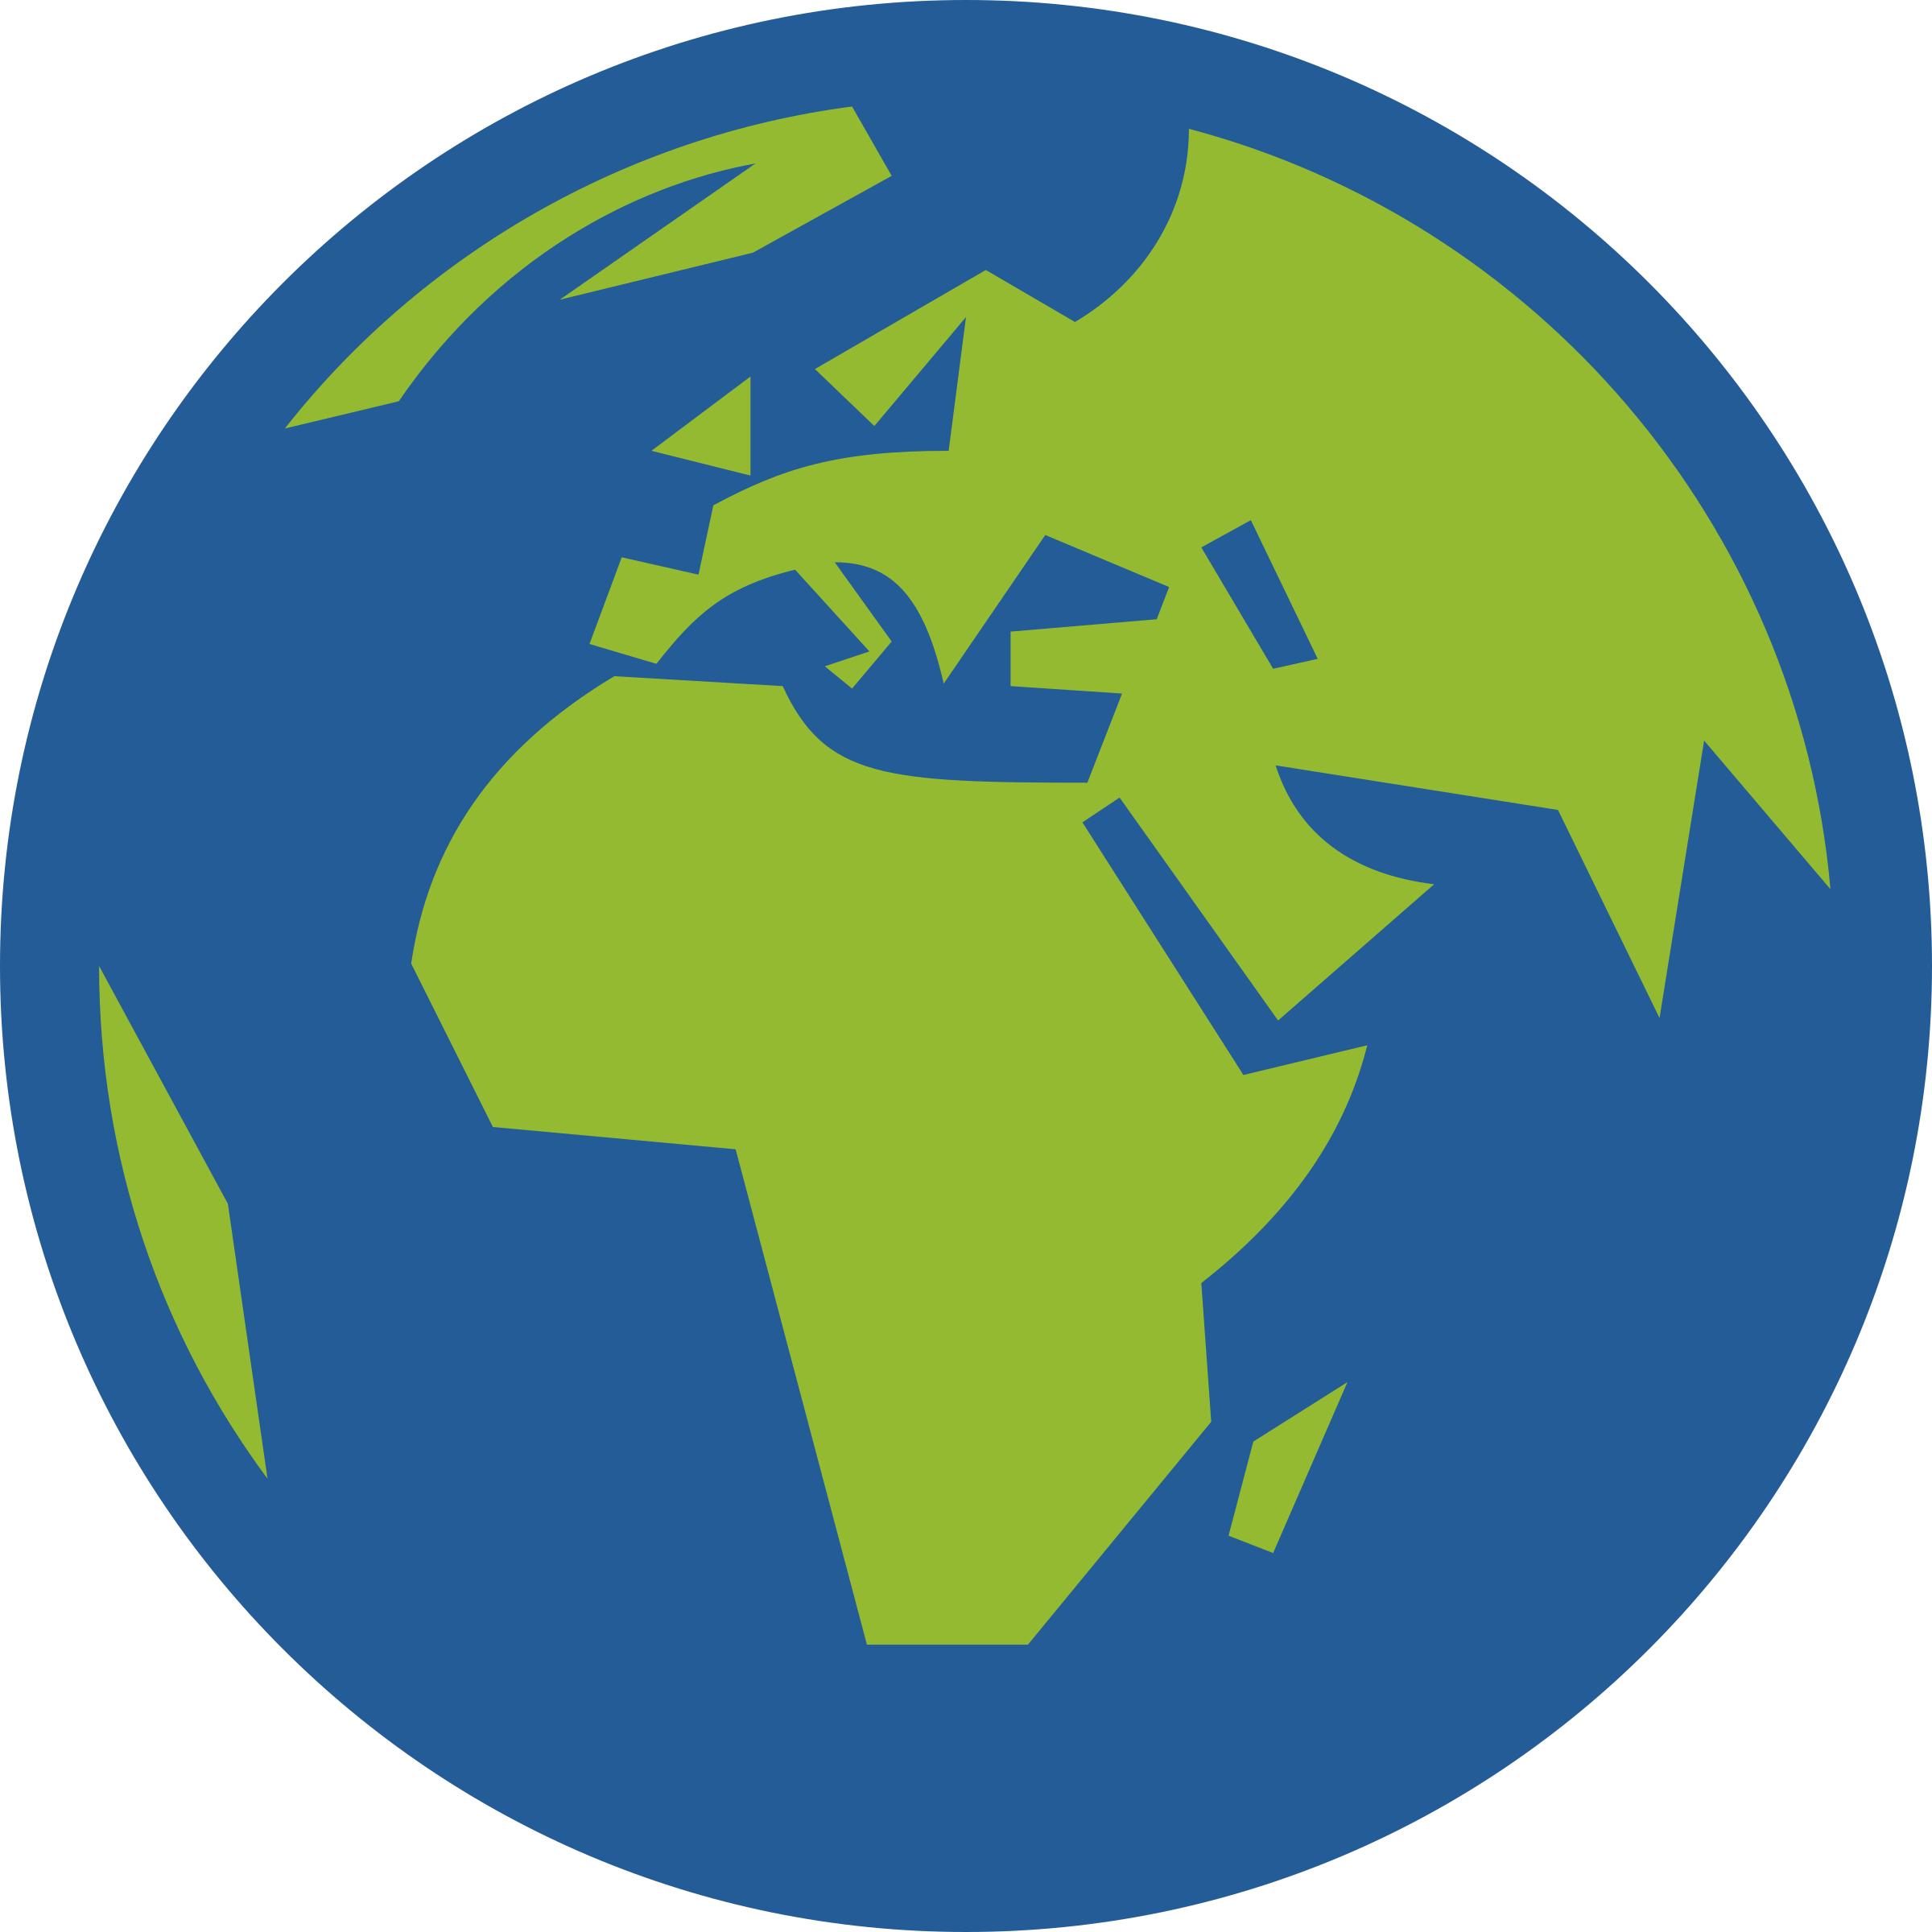 svg transparent library Clipart globe icon facing. Earth svg simple